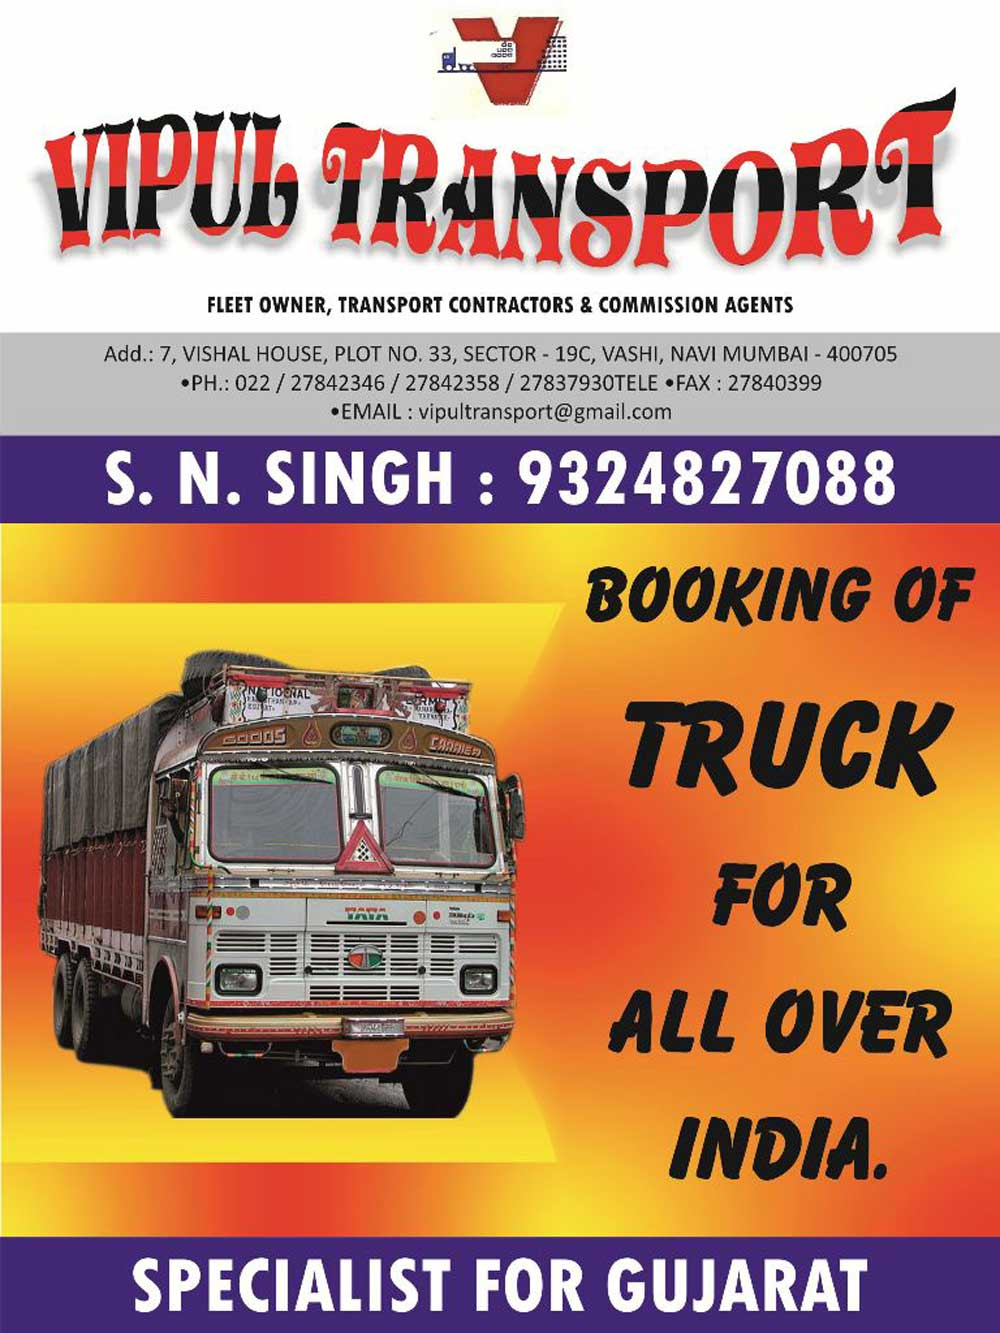 Vipul Transport